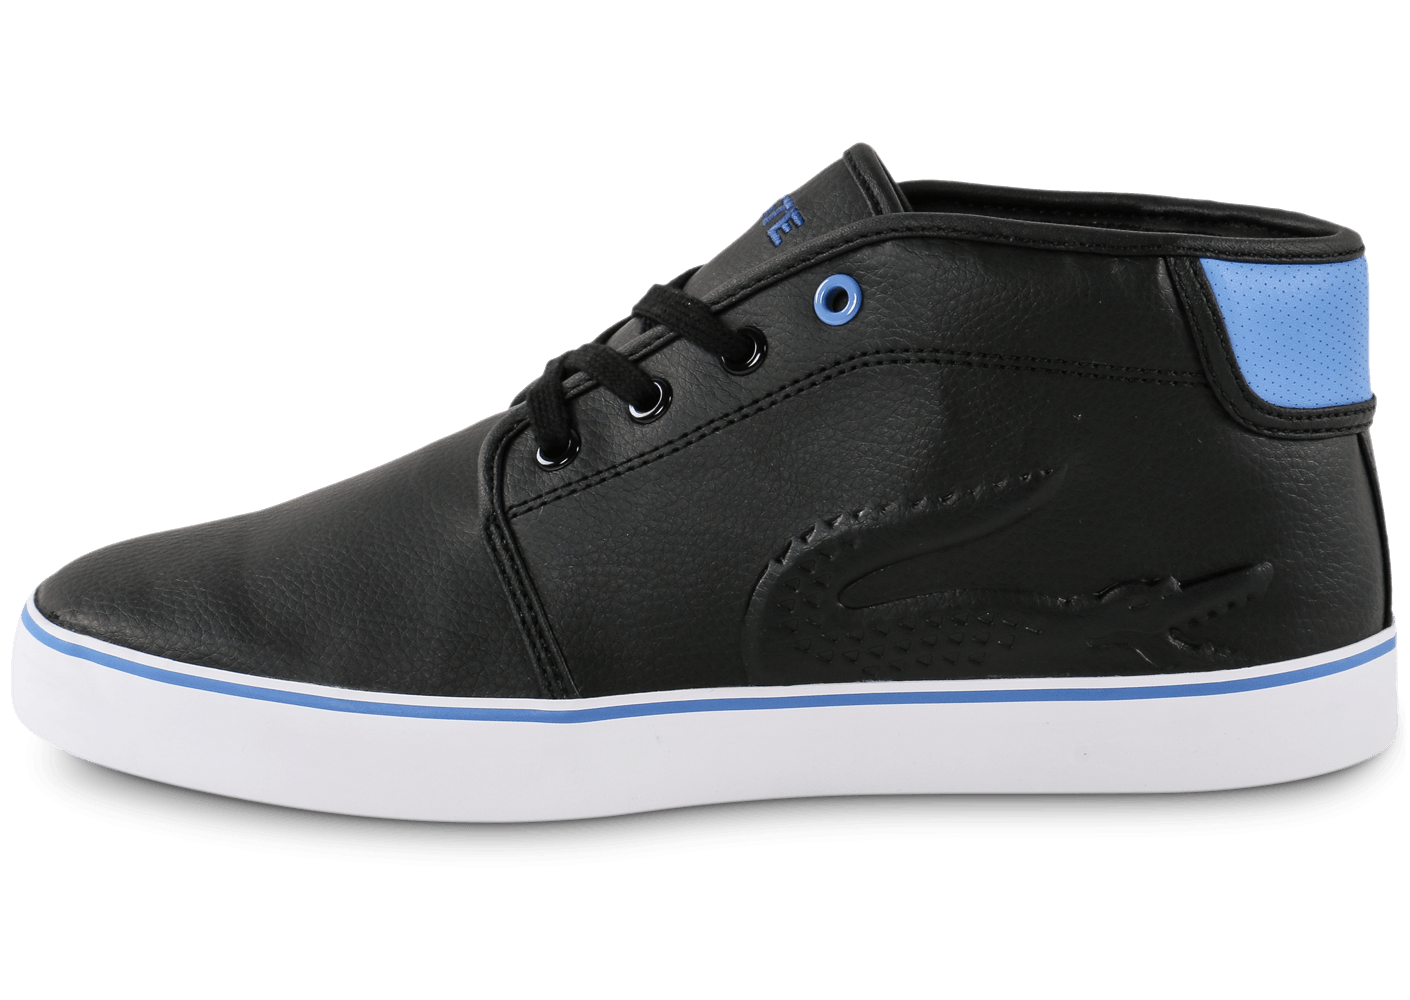 568b9503a515b6 Lacoste Ampthill Junior Syn noire - Chaussures Chaussures - Chausport